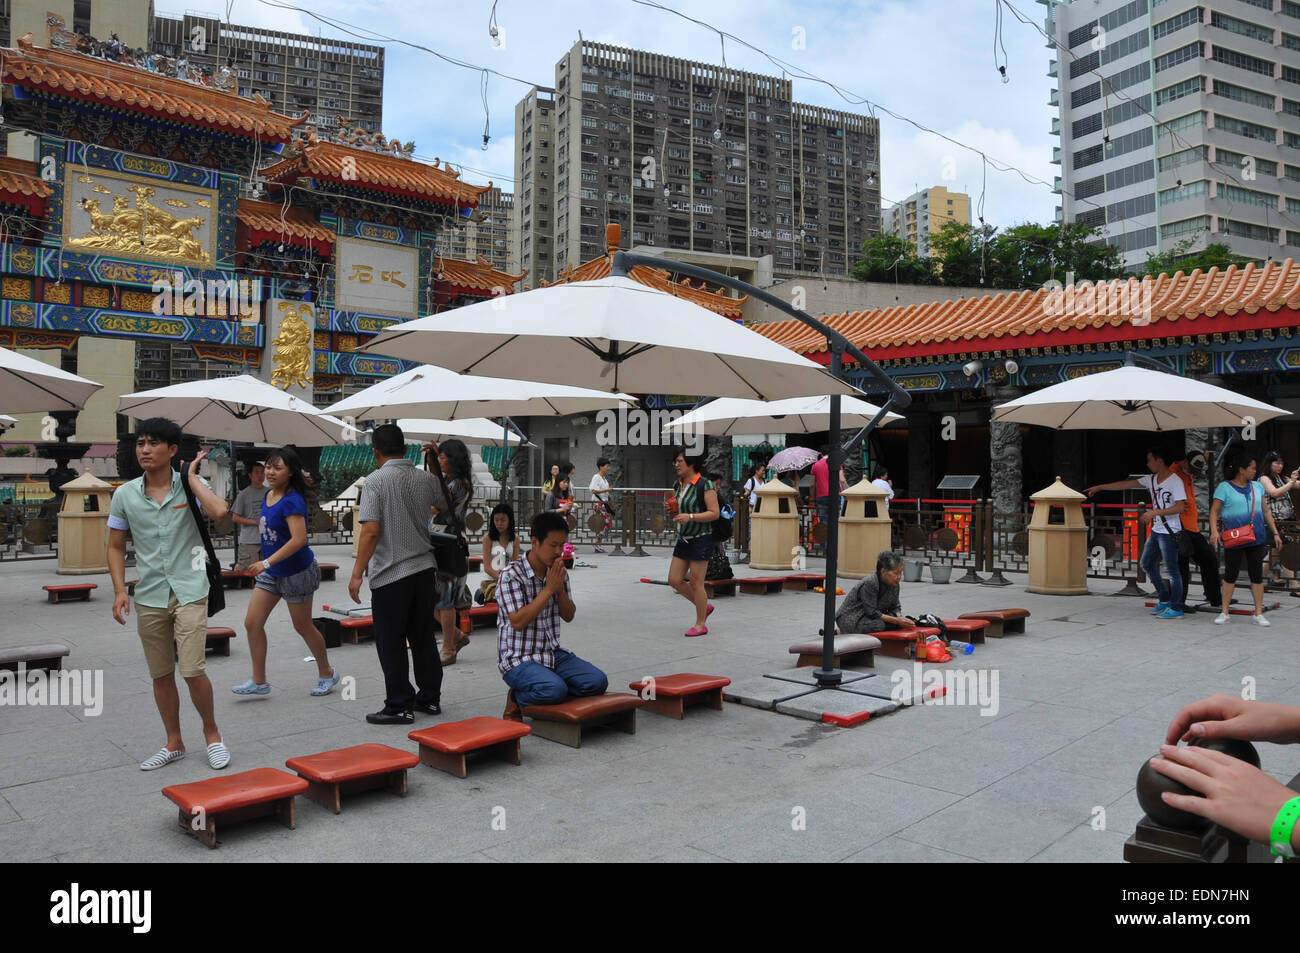 Sik Sik Wong Tai Sin temple, Kowloon, Hong Kong, which claims to 'make every wish come true upon request' - Stock Image